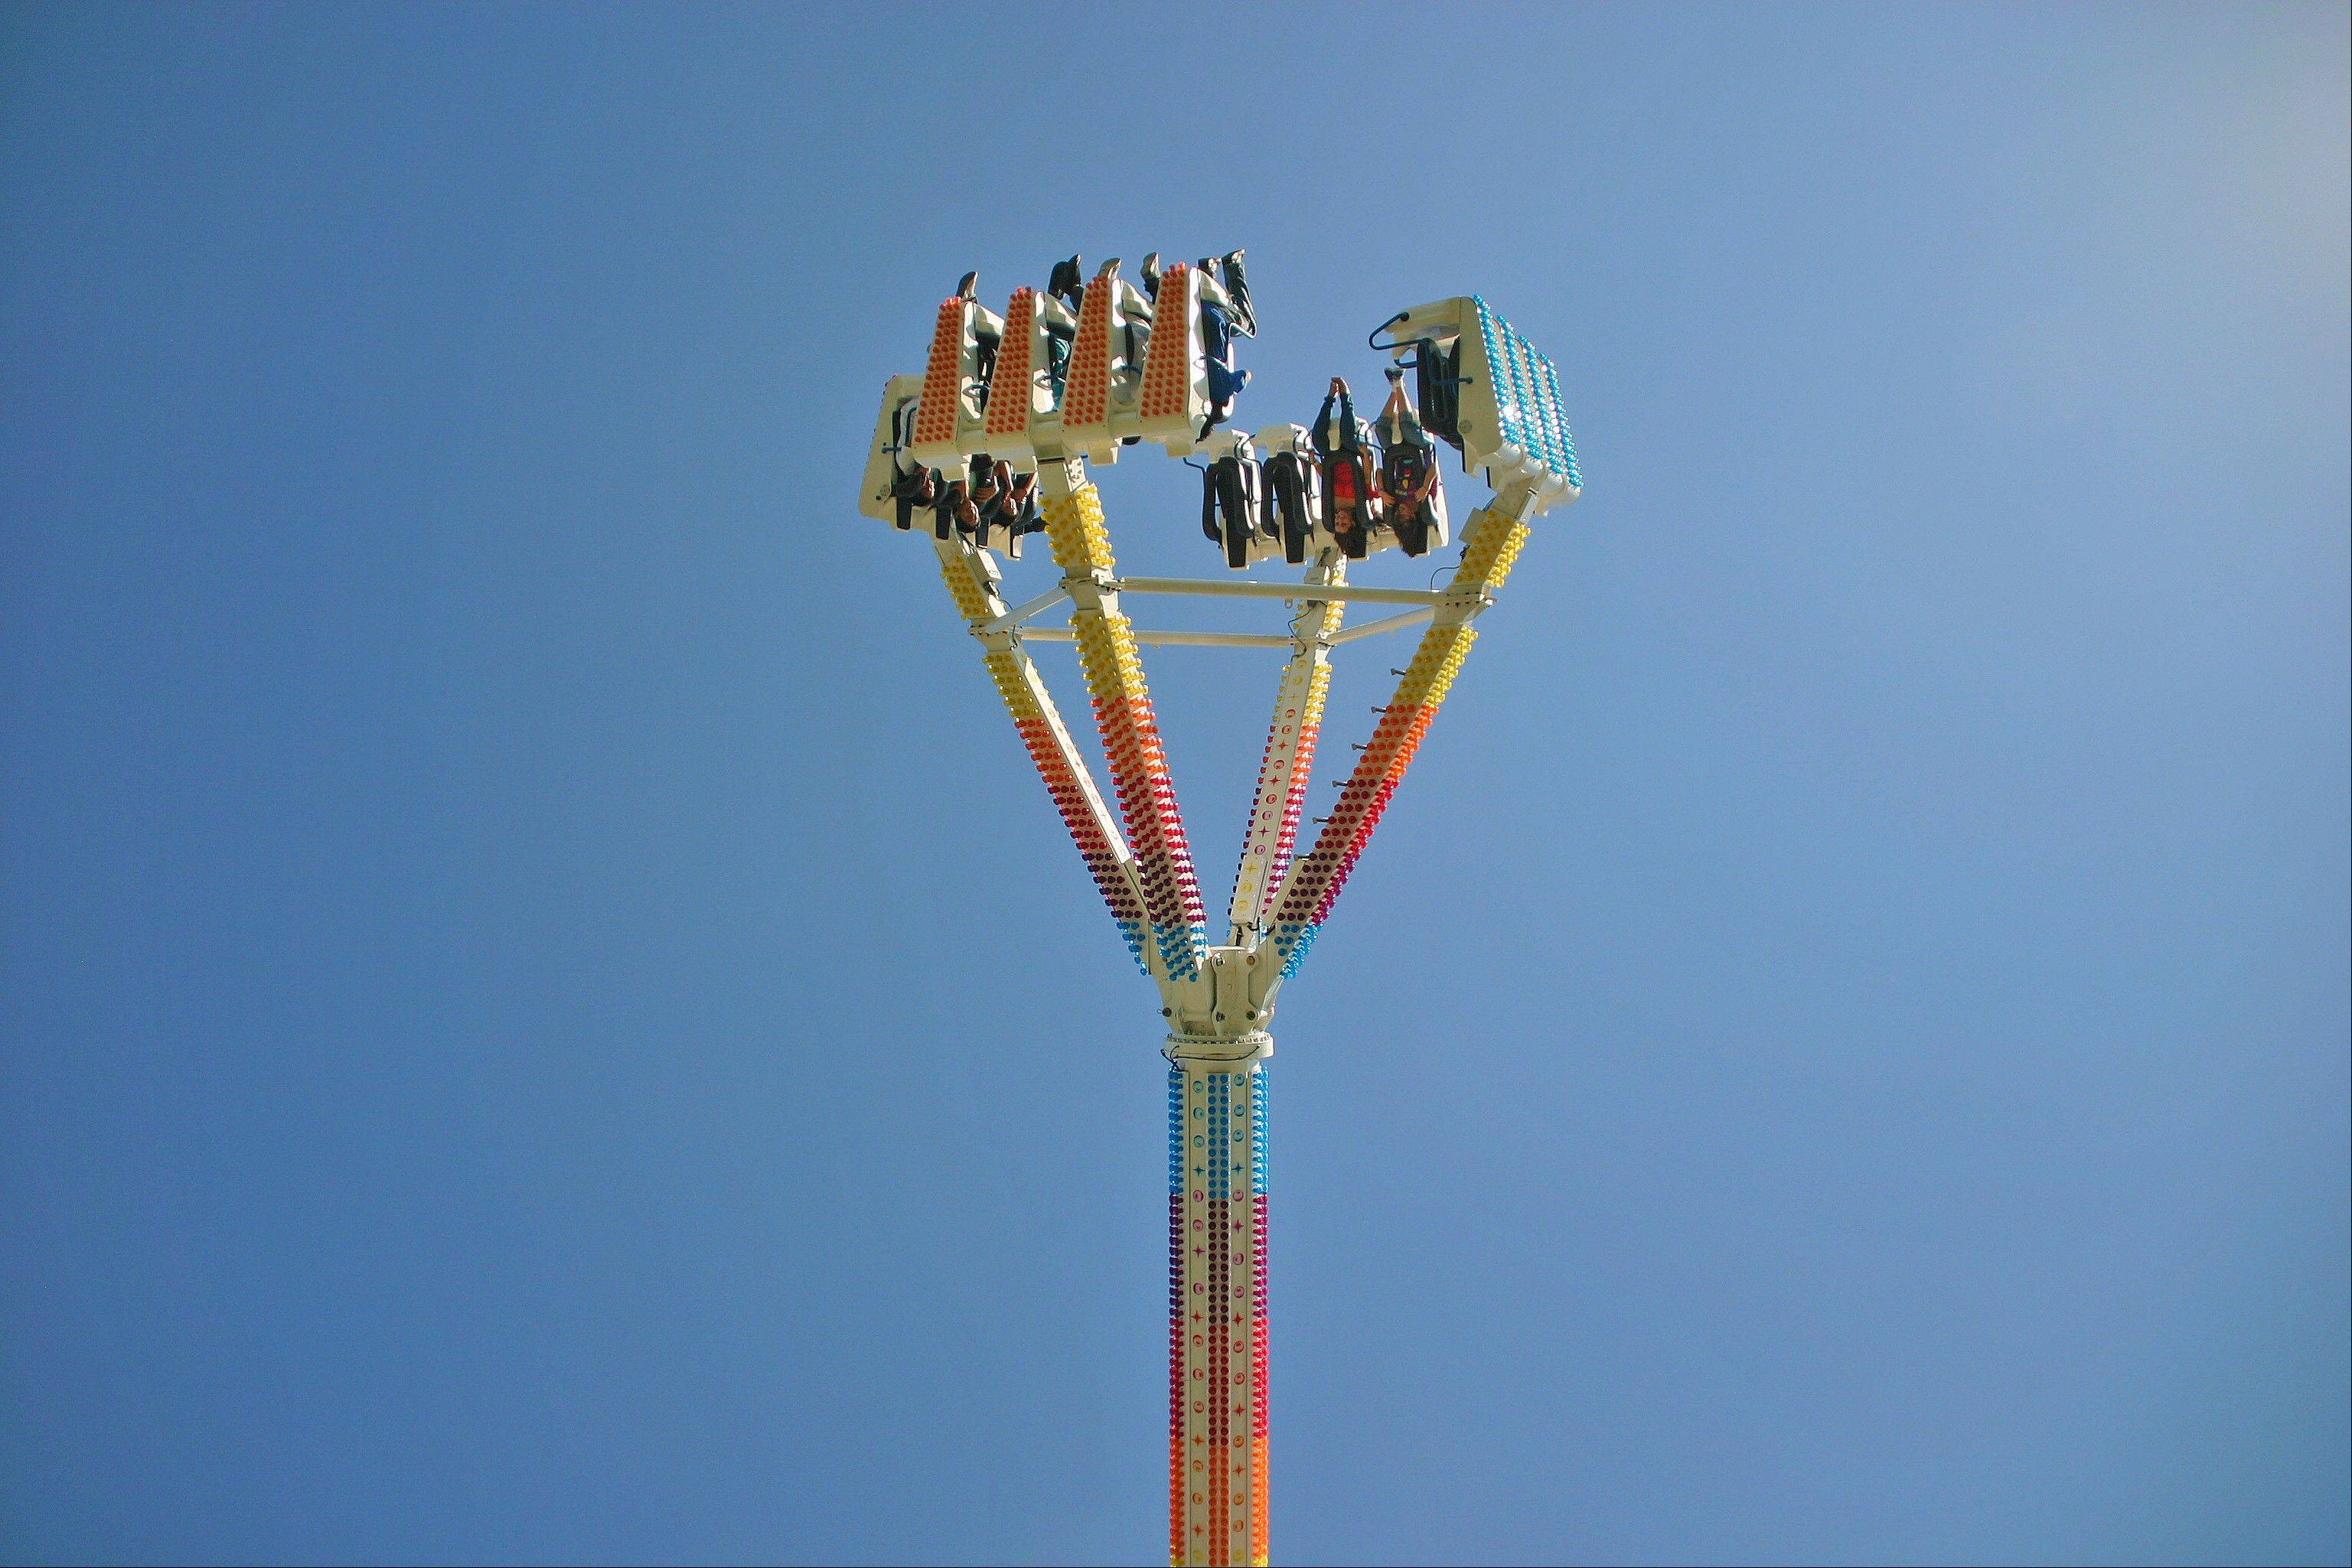 """Freak Out!"" is one of many rides for kids and adults at the carnival at Fall Fest Des Plaines at Lake Park."